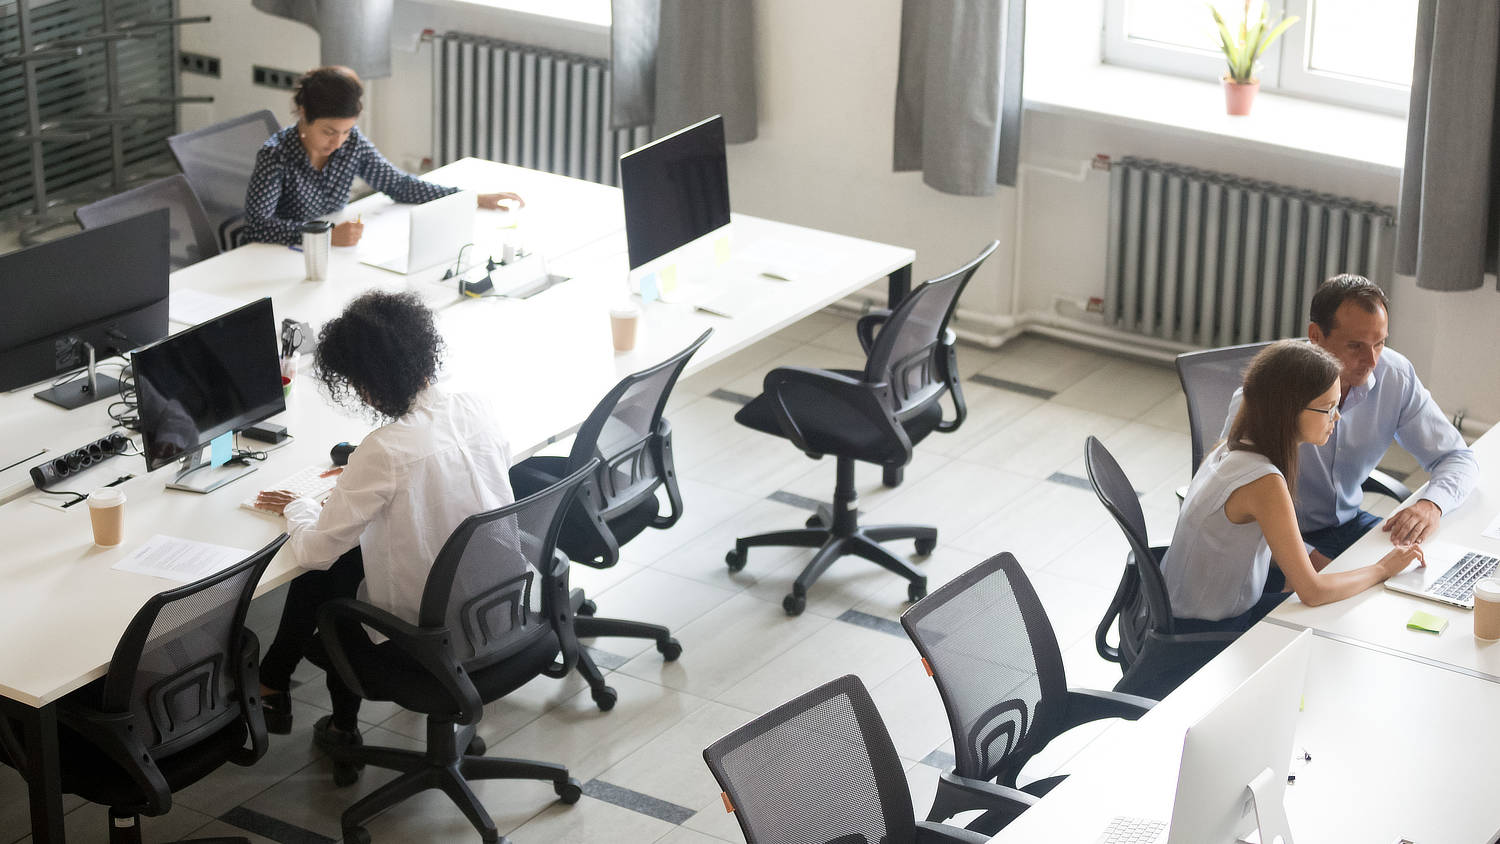 Is this the Demise of the Hot Desk & Activity-Based Workstations (ABW)?